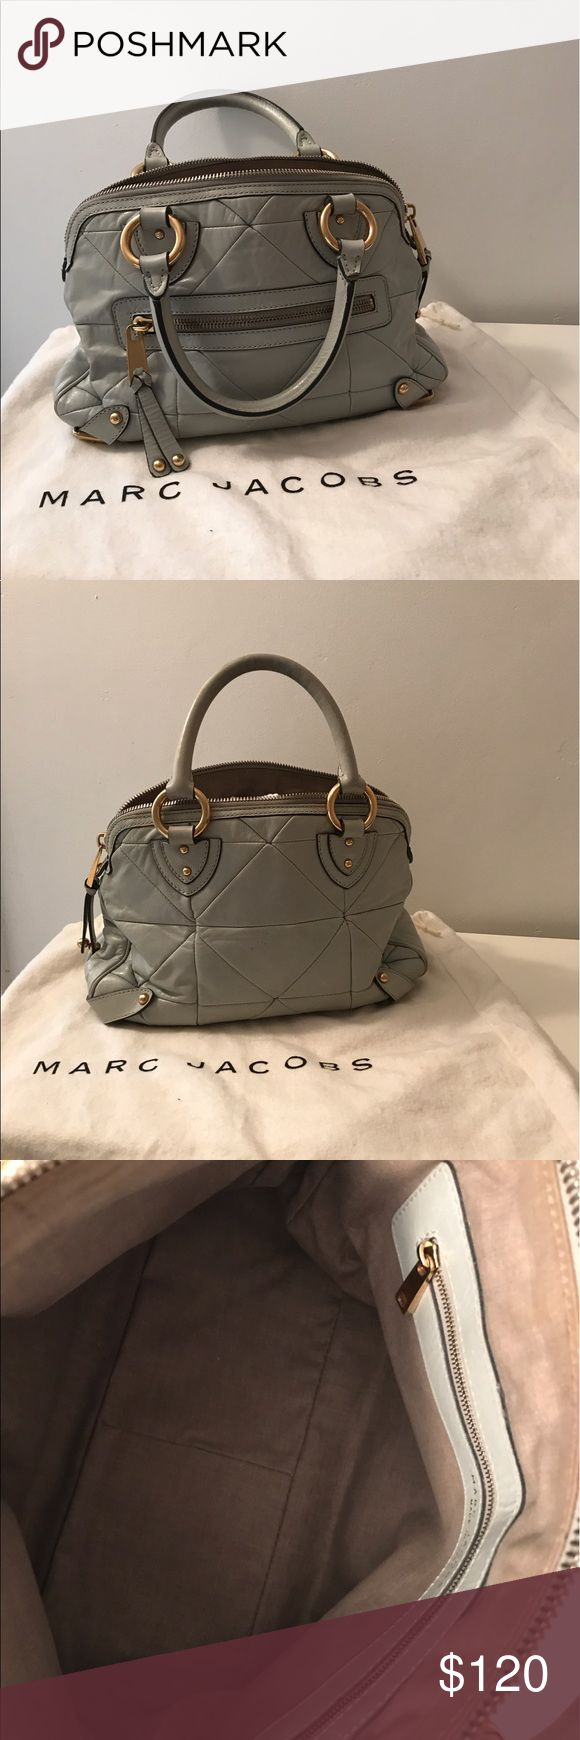 Aborable Marc Jacob Shoulder Bag Mint green Marc Jacob Patchwork Ines shoulder bag. Gold hardware with zipper compartments on the exterior and interior. Great purchase! Marc Jacobs Bags Shoulder Bags